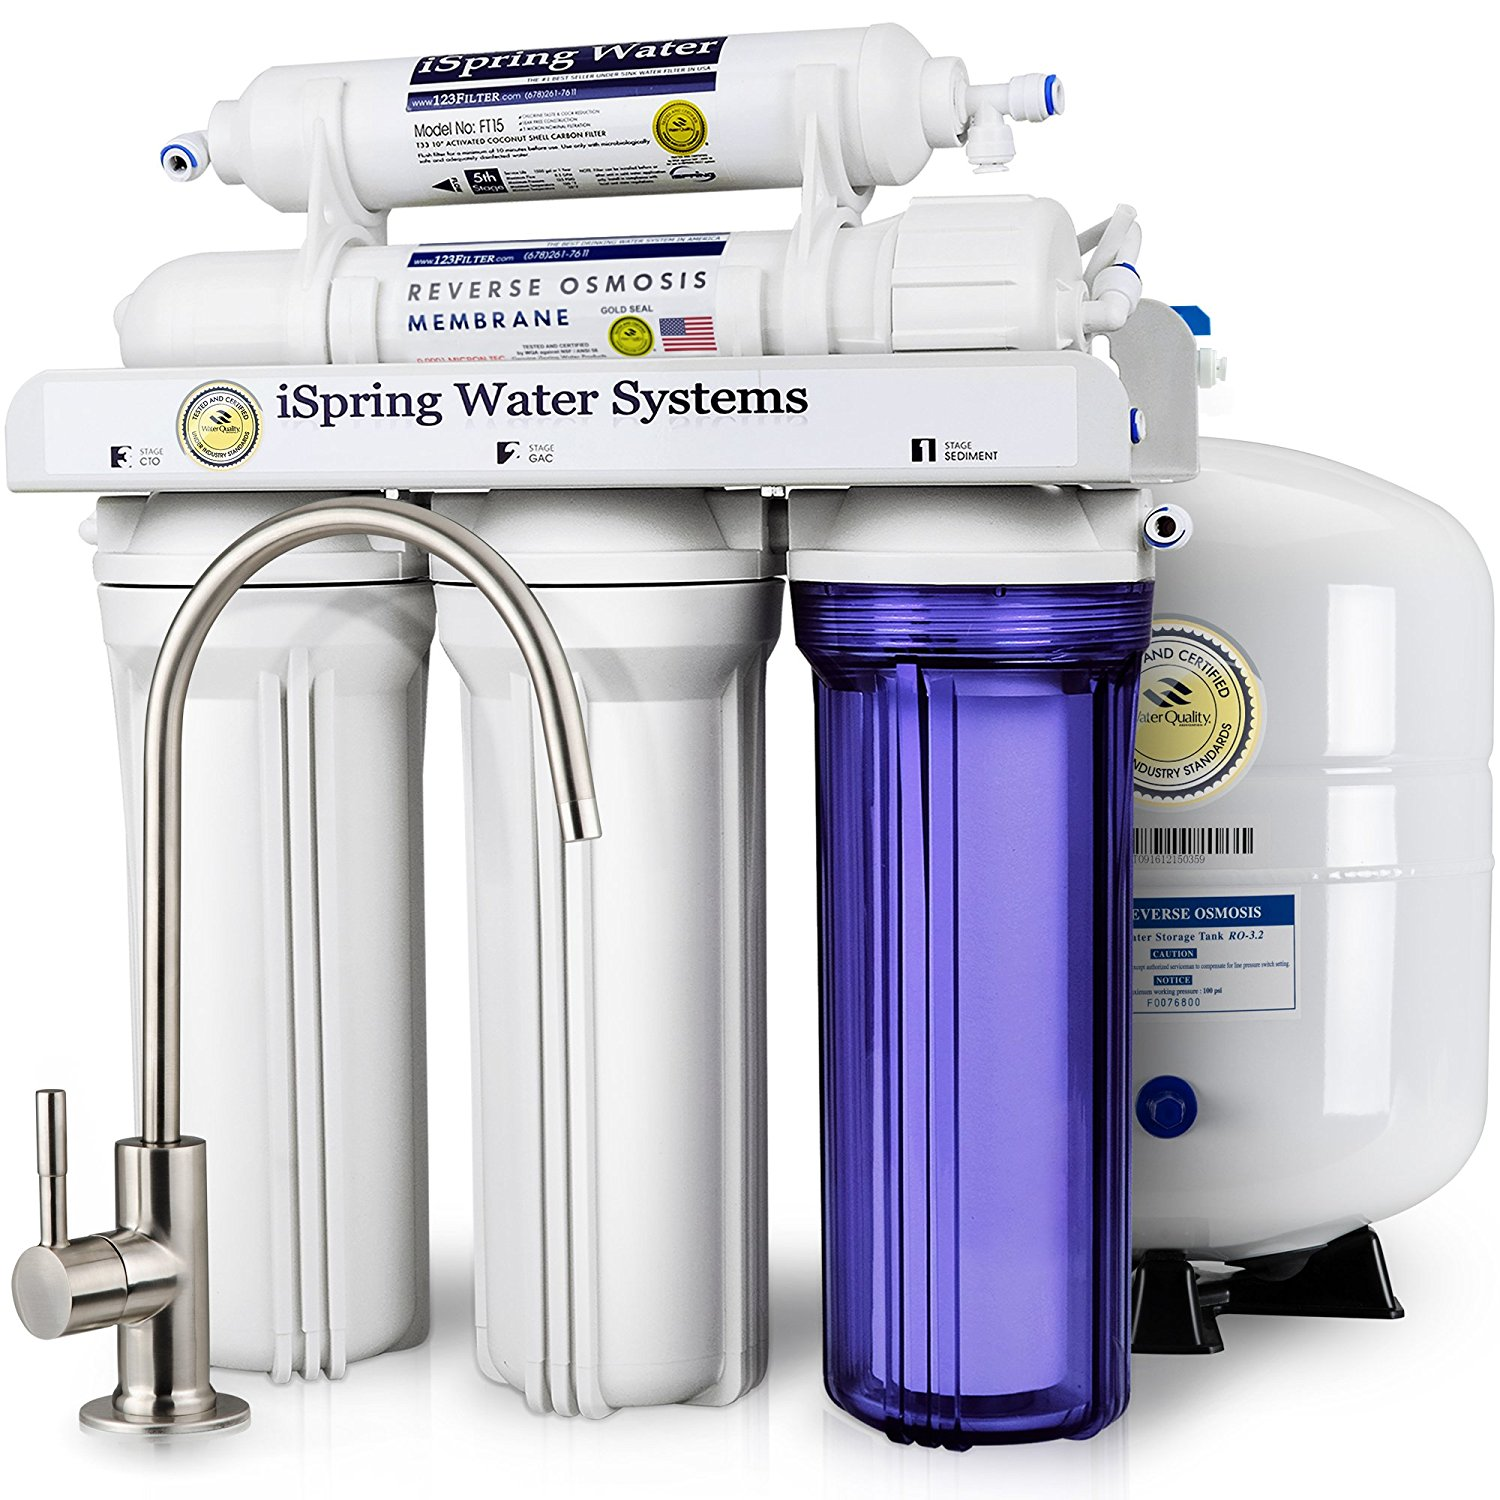 Reverse osmosis under the sink water filtration system. (Click image for more info)